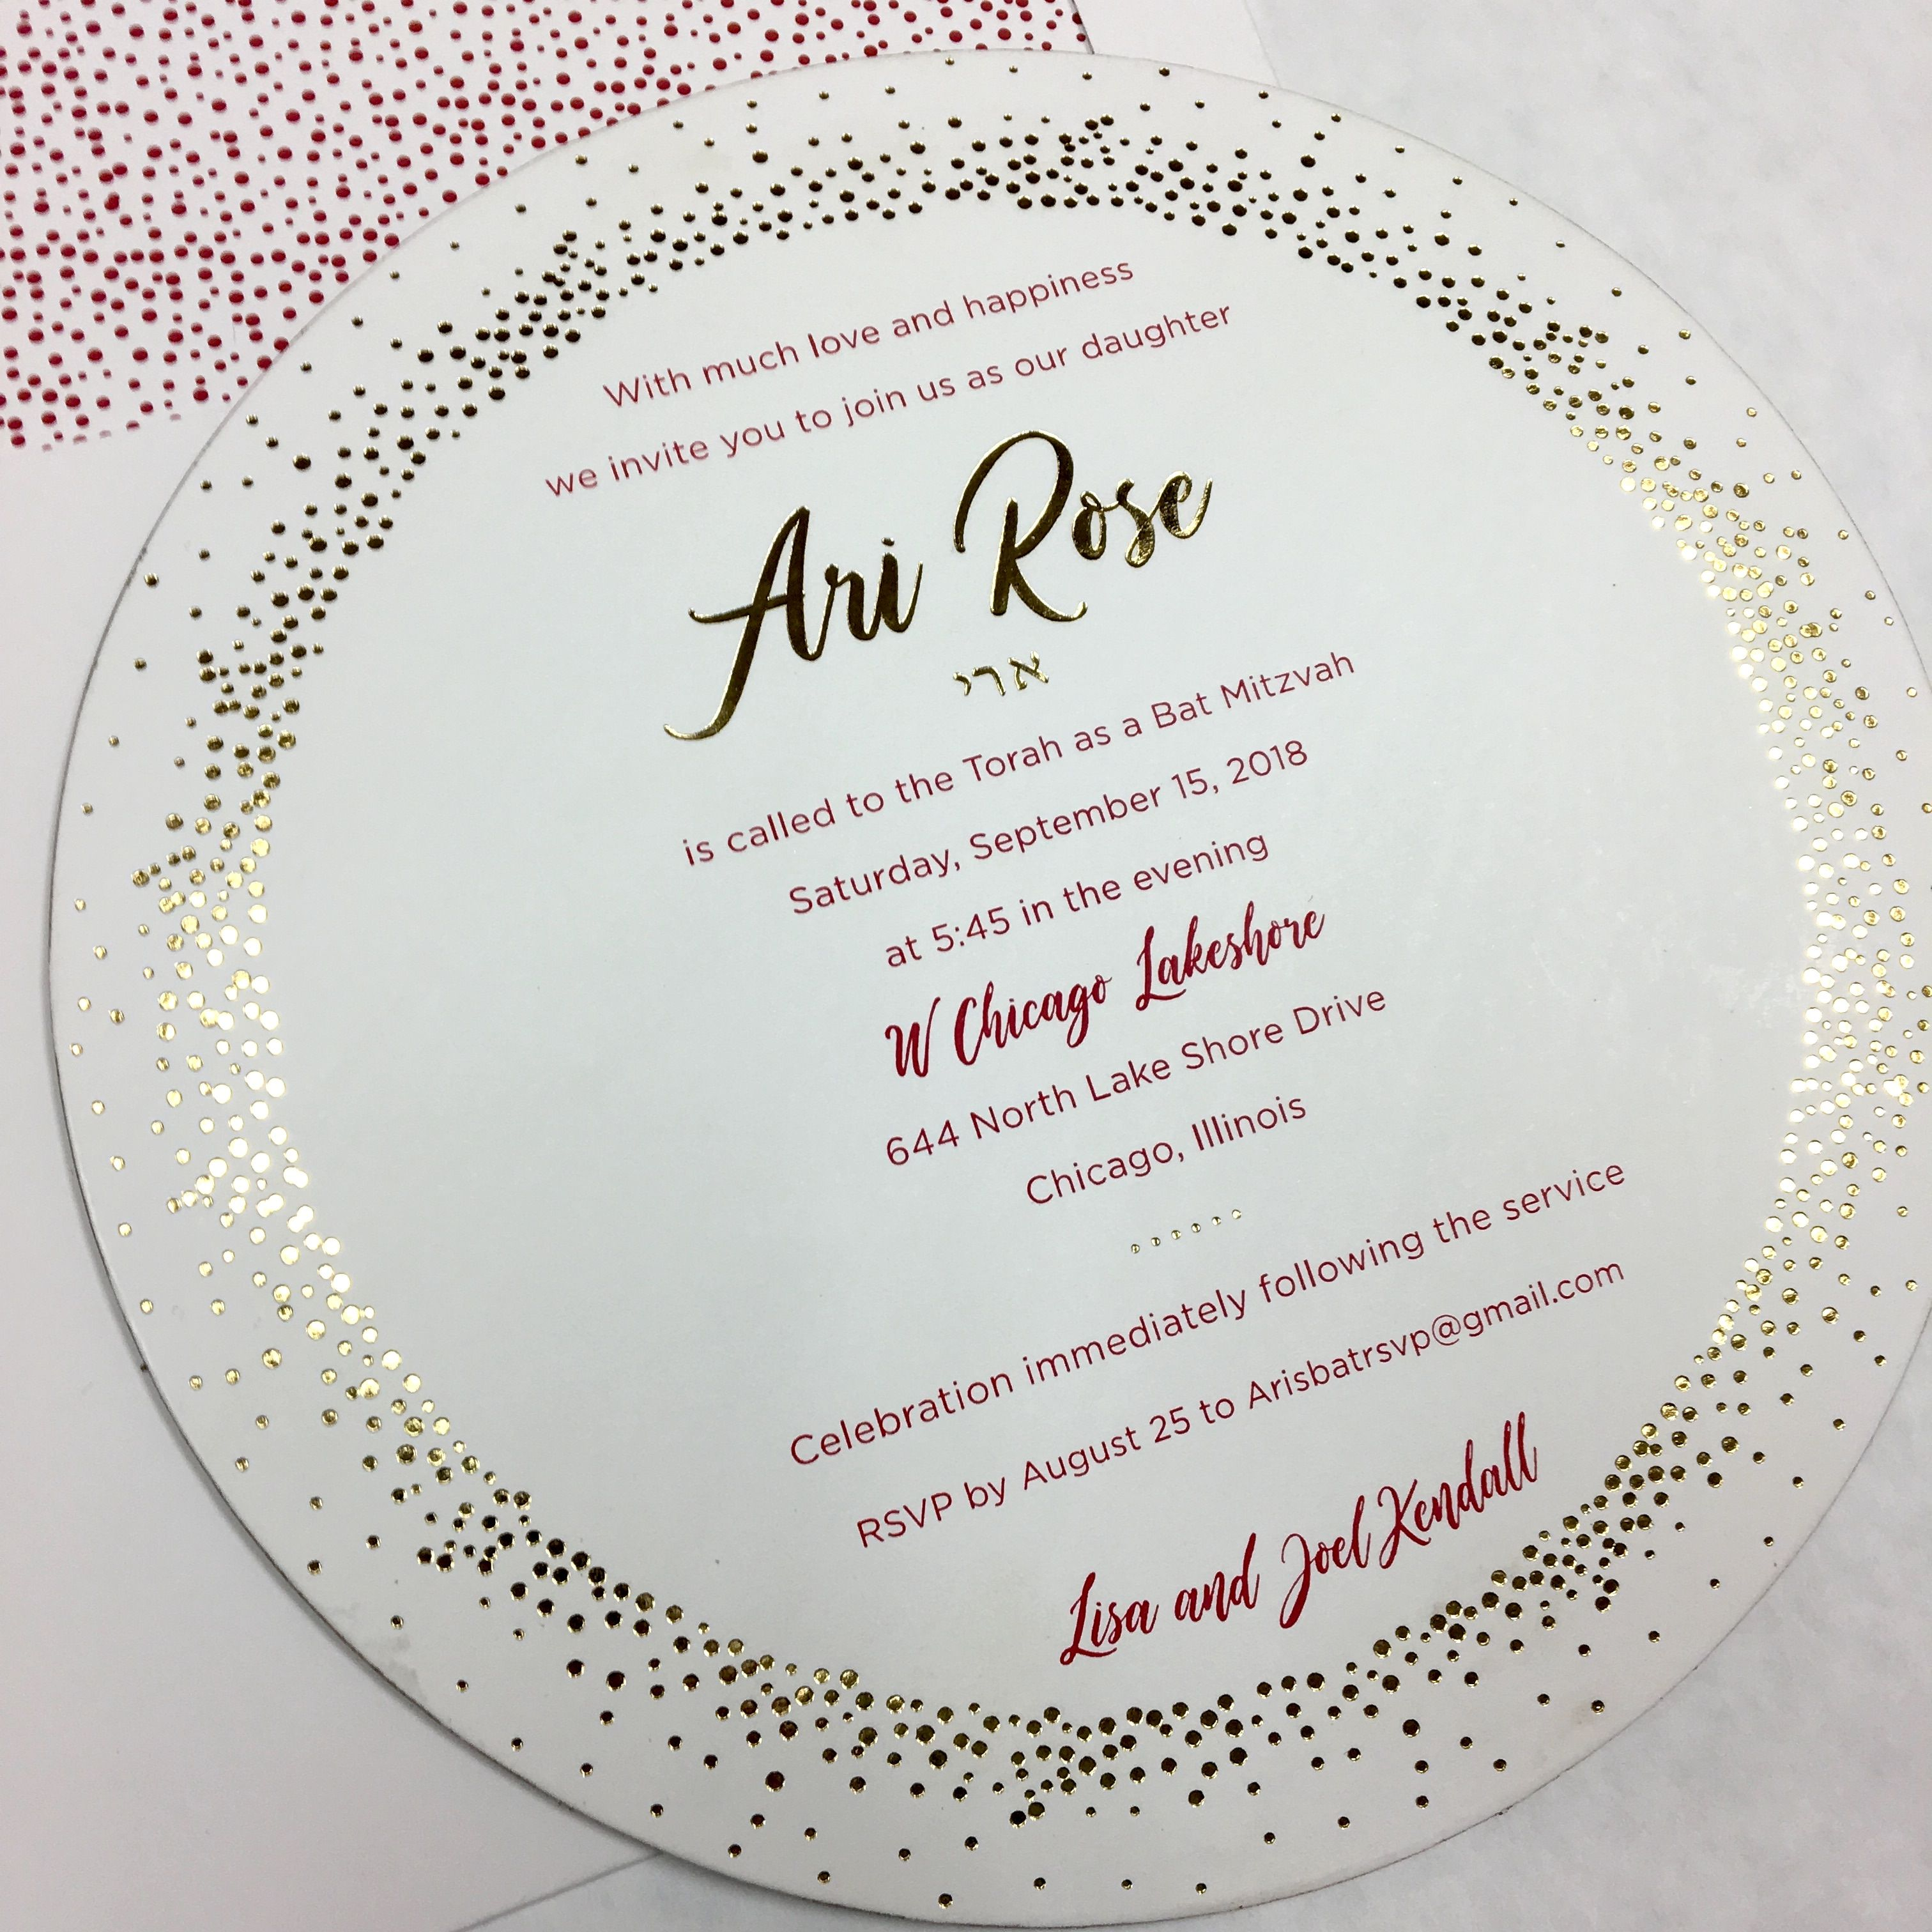 e7c9a52a9 This 6 ply circle invitation was edge painted in gold and backed with a glossy  gold